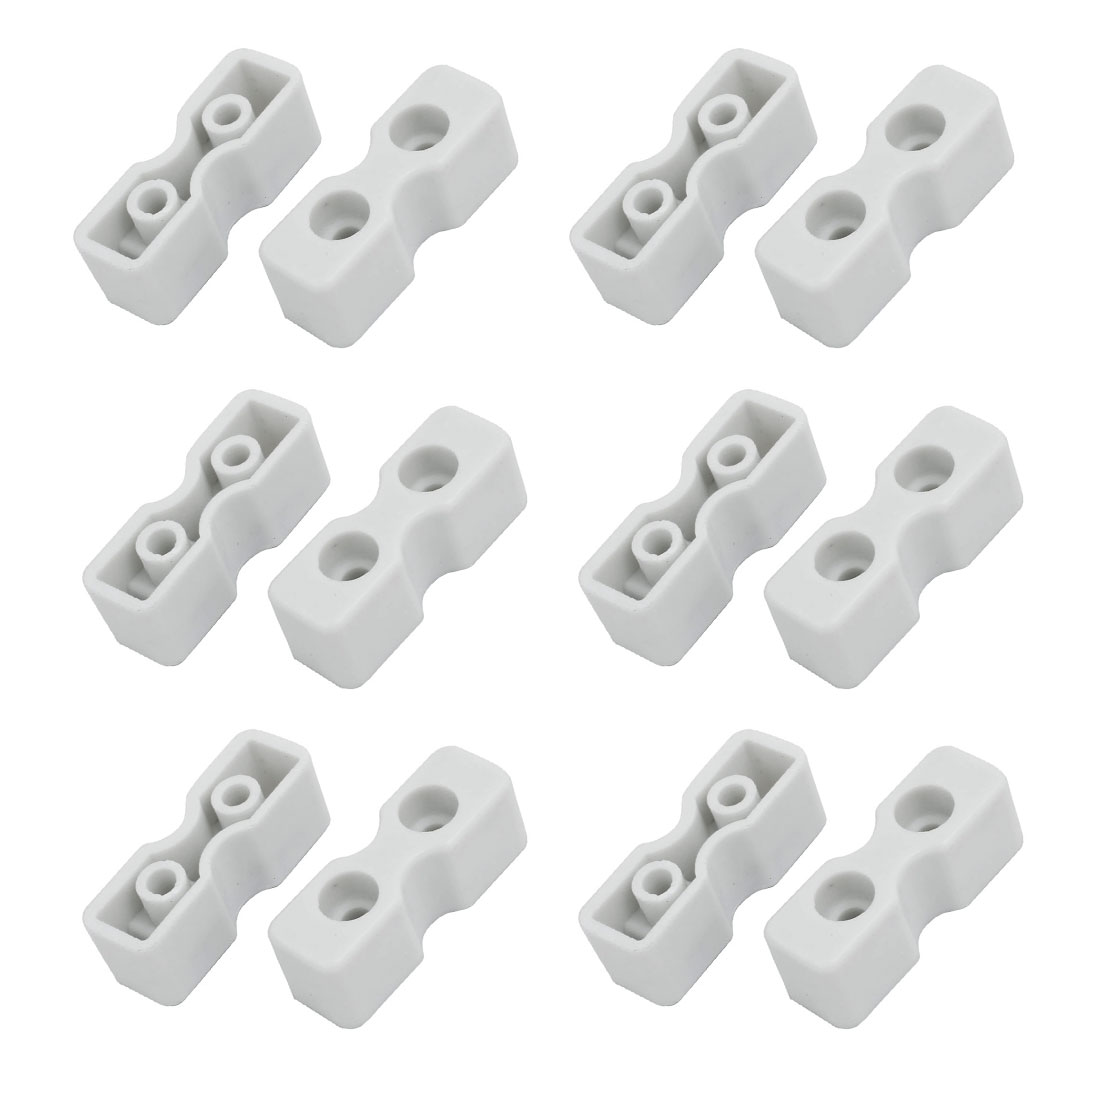 46mmx15mmx16mm ABS Plastic Double Hole Bed Board Tray Bracket 12pcs